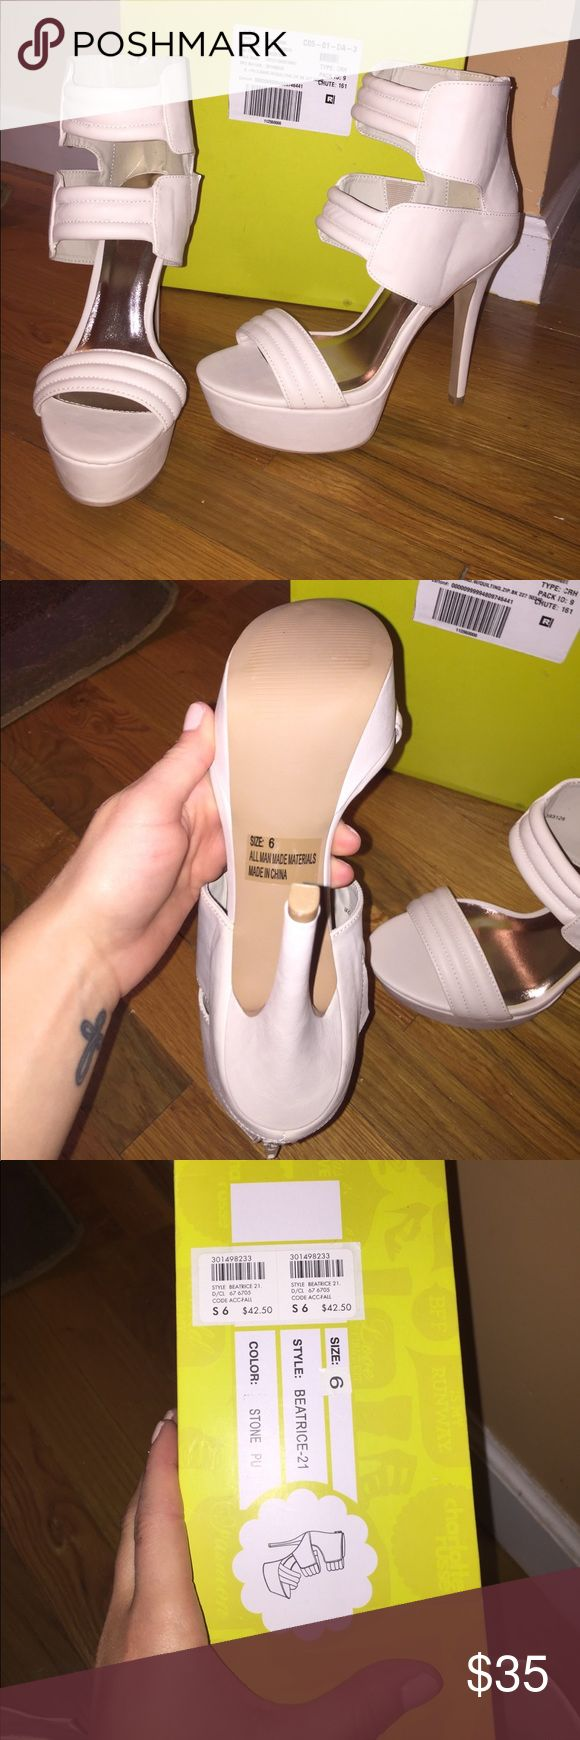 Stone colored Charlotte Russe heels Size 6, off white heels. Zip up in the back. NEVER WORN! Super cute but unfortunately they were too big for me. Charlotte Russe Shoes Heels